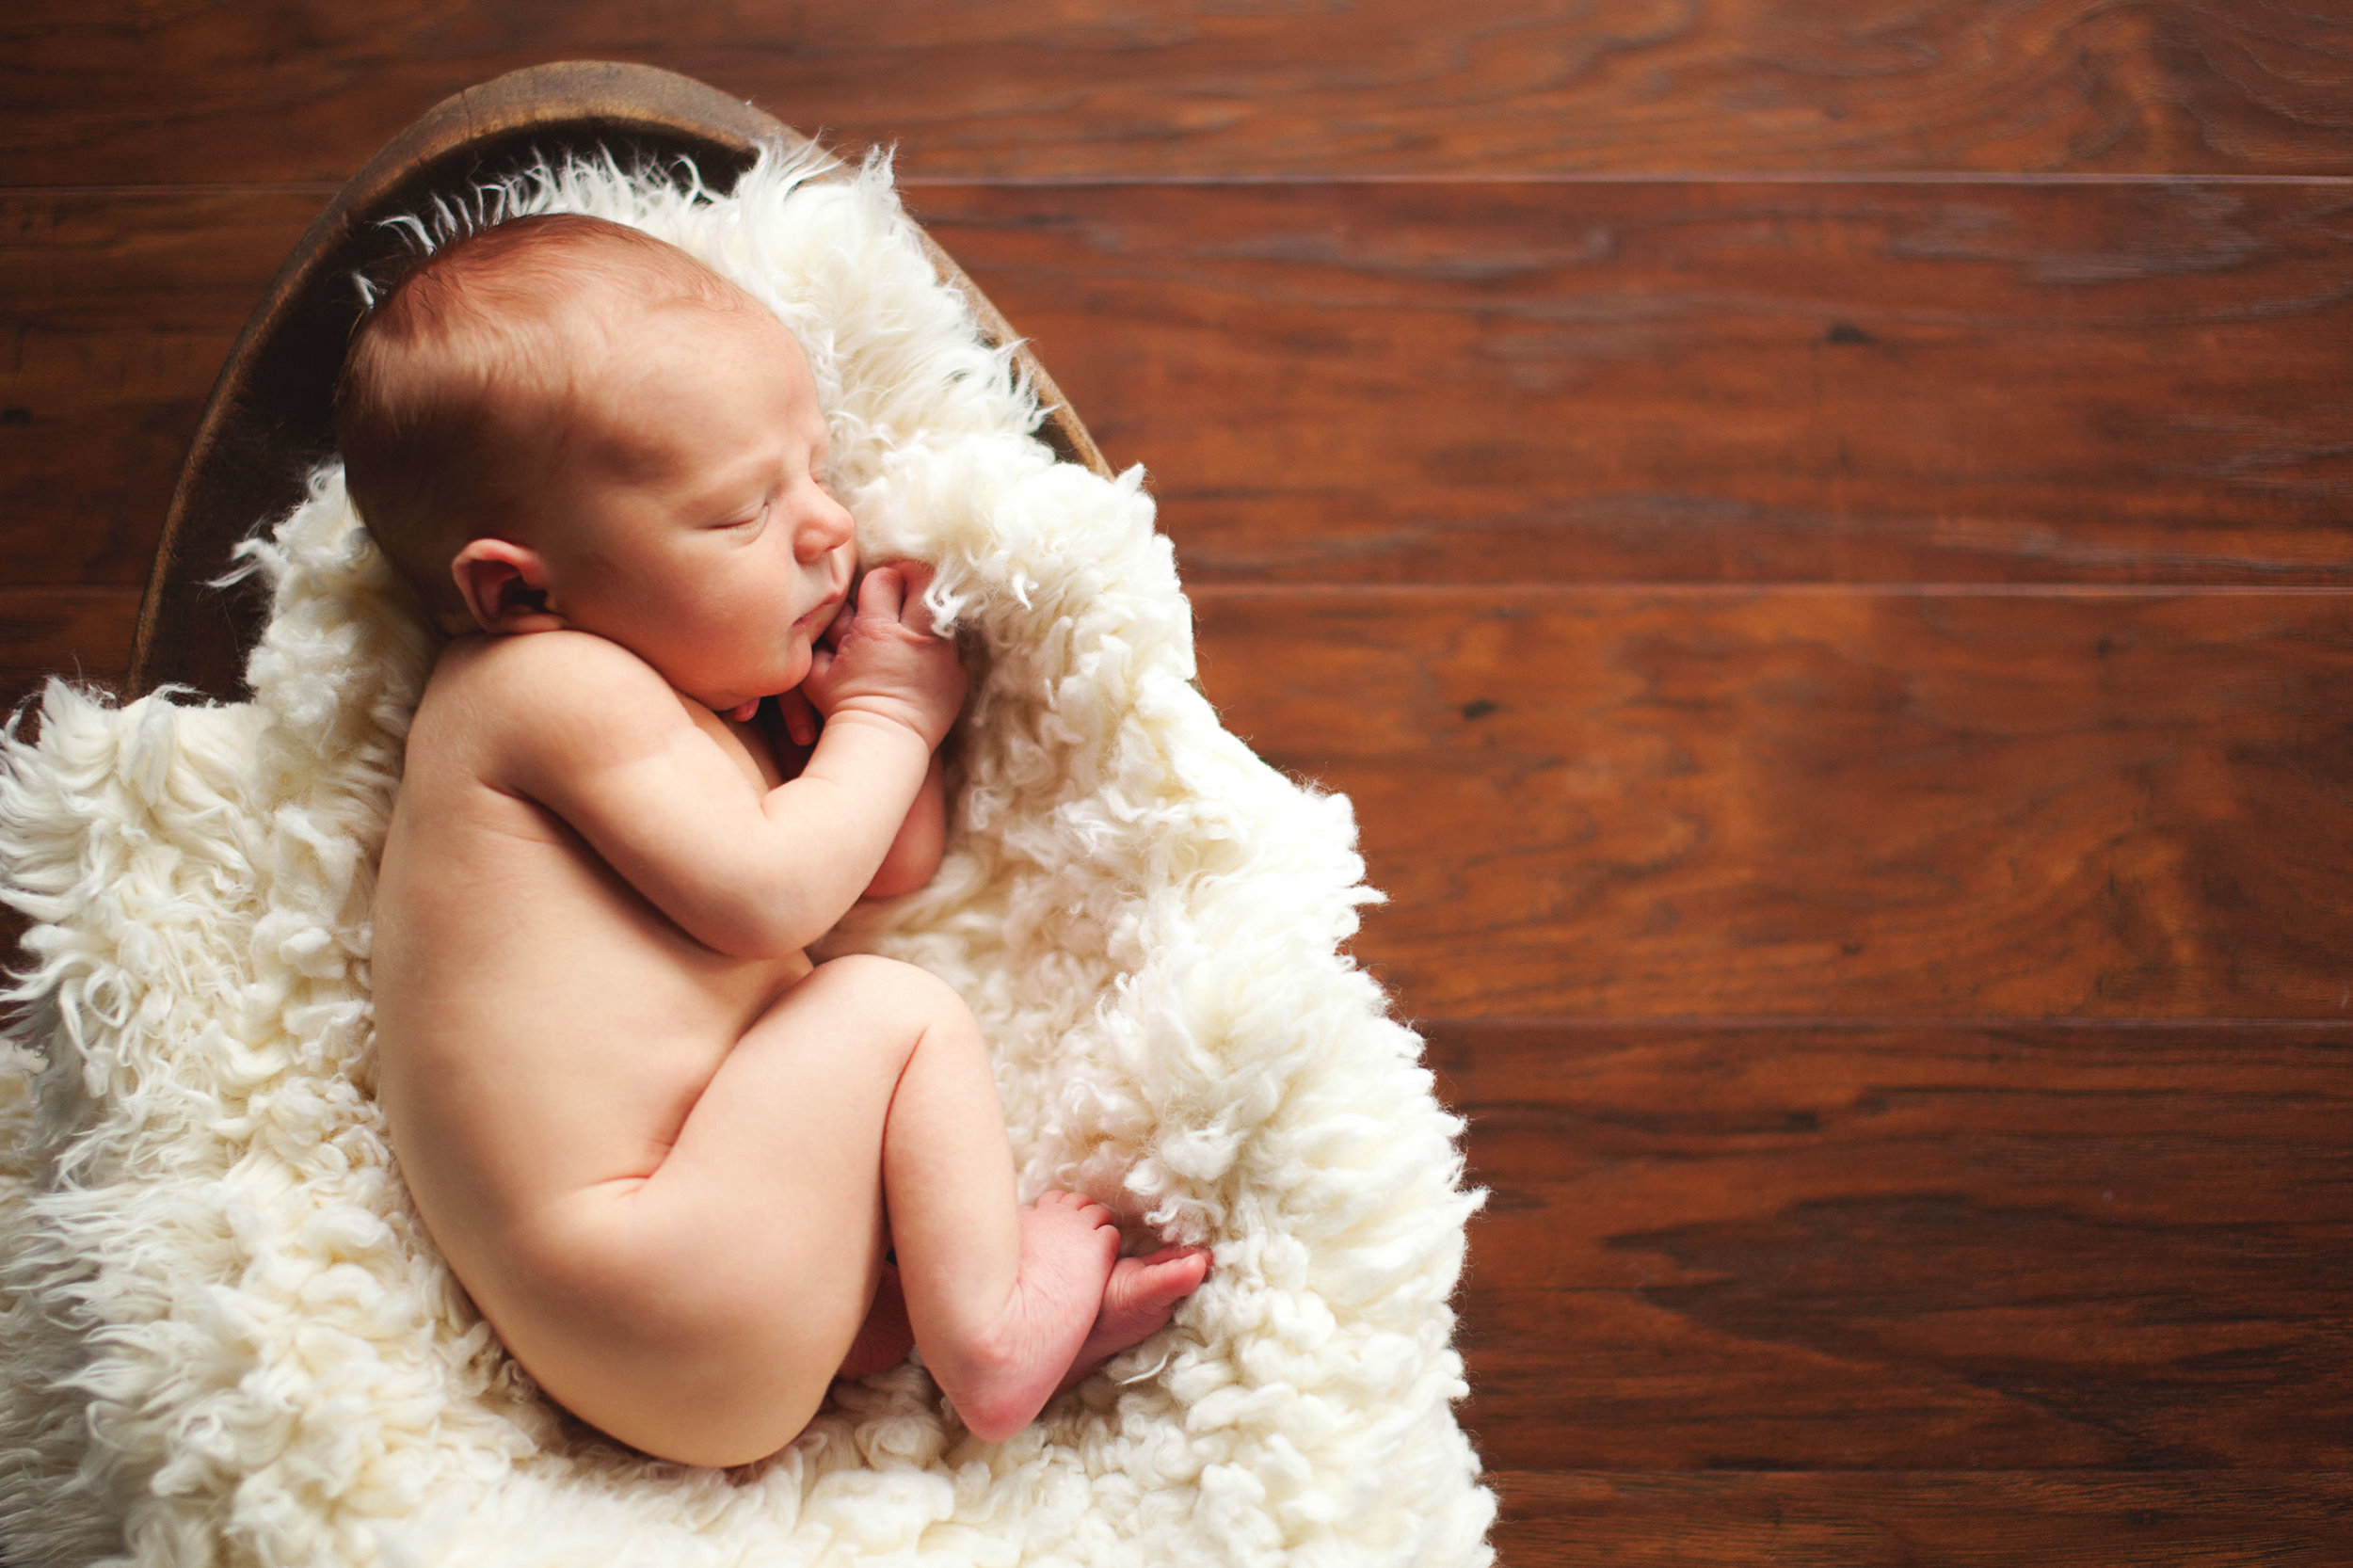 arkansas_newborn-child_photographer_009.jpg